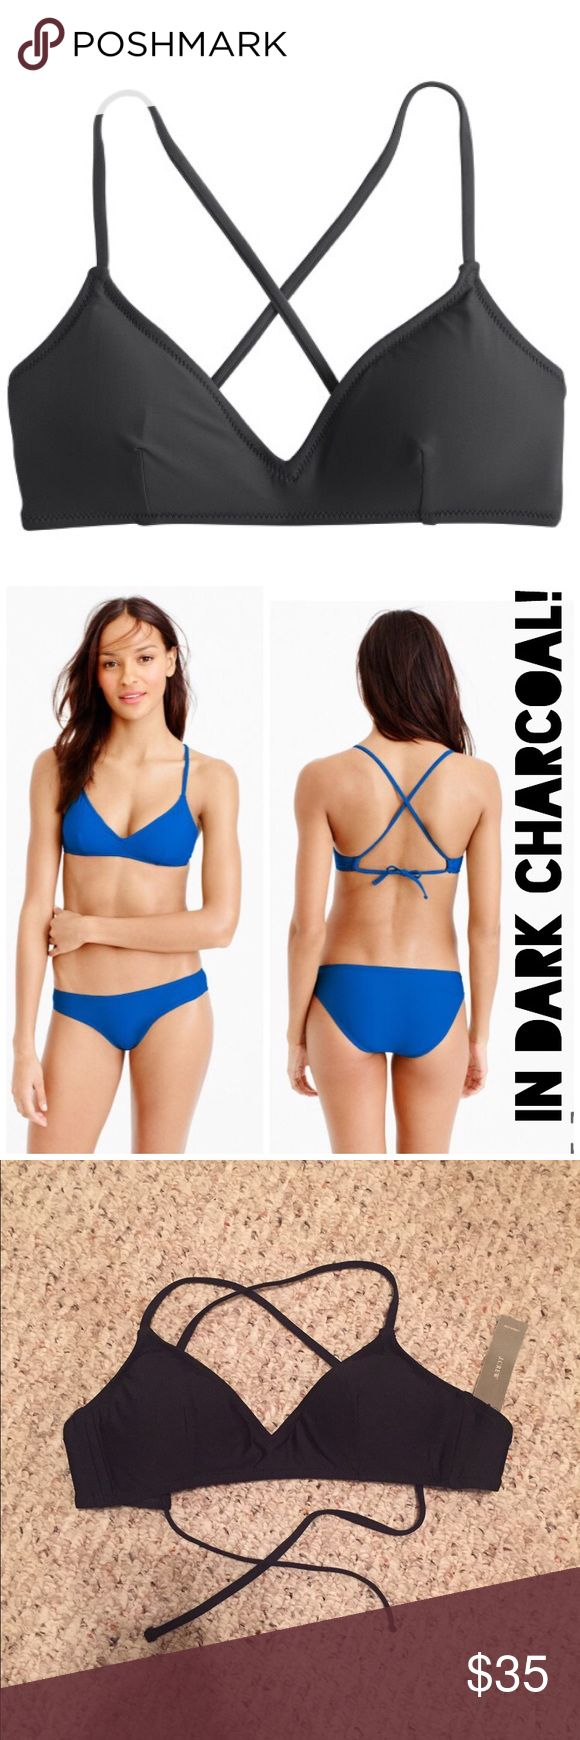 J. Crew French Cross-Back bikini top SMALL NWT! Medium. Black. Got this at a J. Crew warehouse sale so the tag does have a line through the the J. Crew on tag. Authentic J. Crew! Simple but très chic, a classic french cross-back bikini top never fails.  Tactel® nylon/elastane. Ties at back. Removable padding. Lined. Our swimsuits are machine washable, but we recommend hand washing as it helps keep the fabric and the shape of the suit looking newer, longer. J. Crew Swim Bikinis